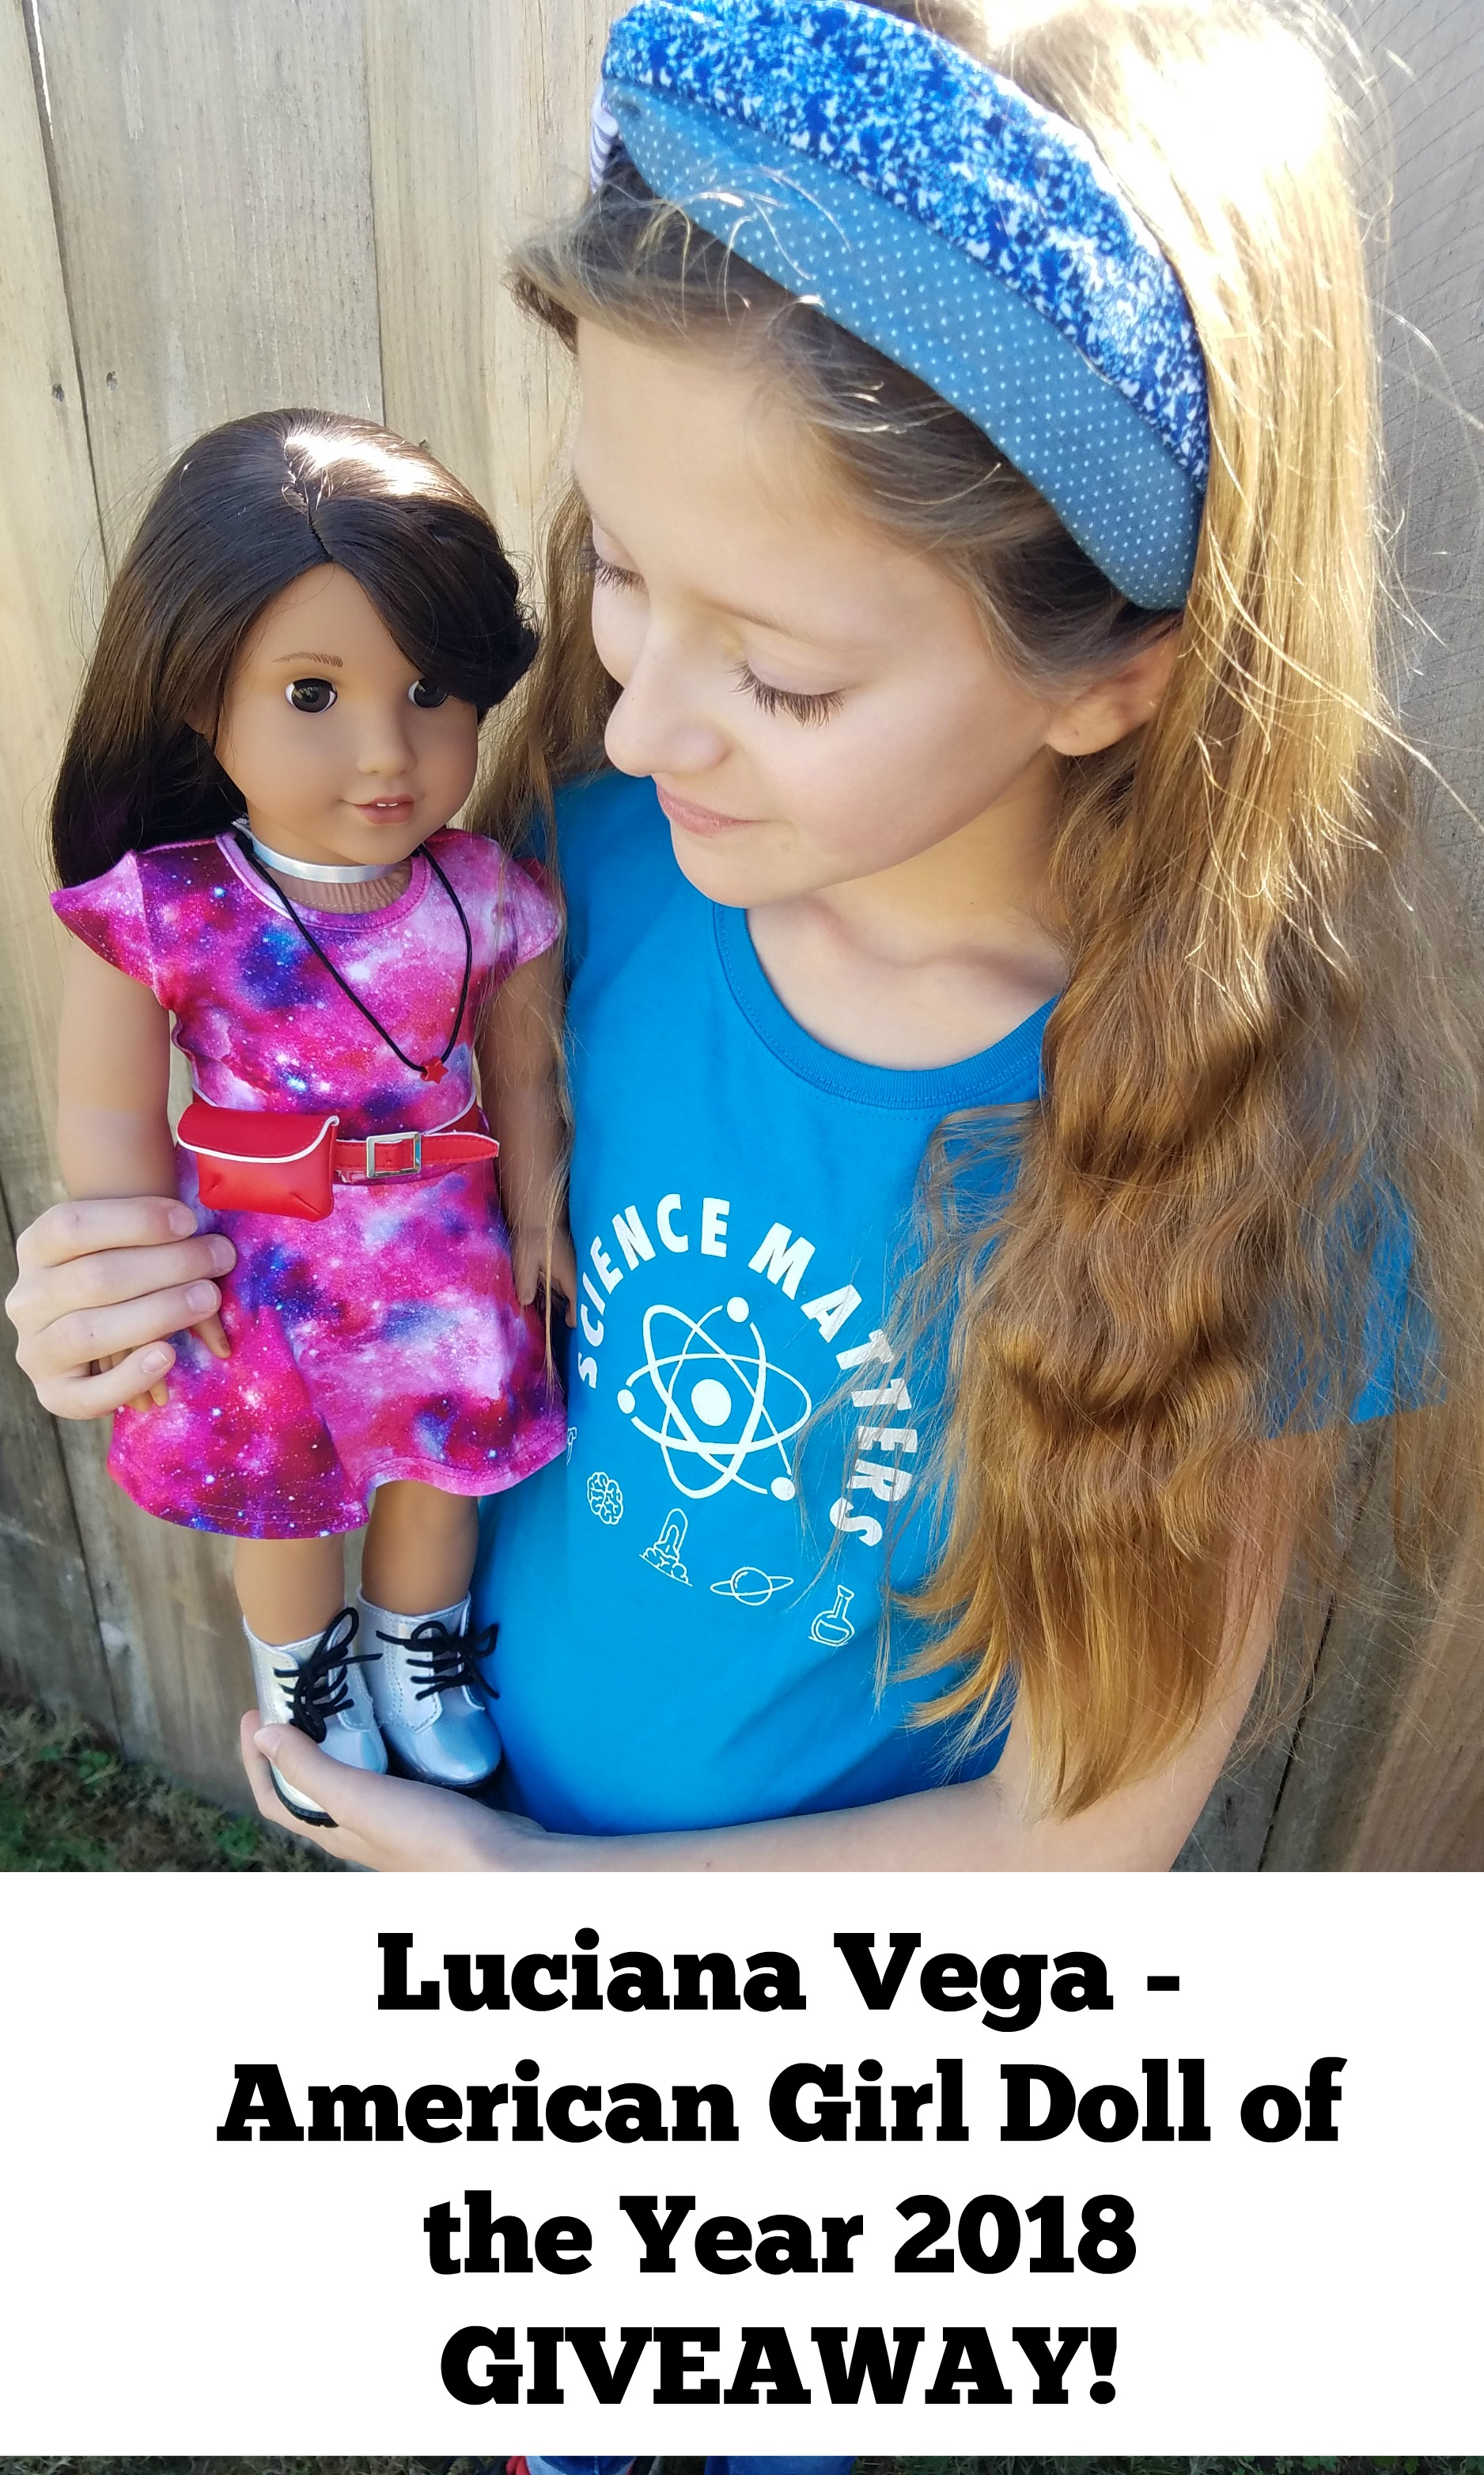 Giveaway for American Girl Doll of the Year 2018 Luciana Vega from Highlights Along The Way